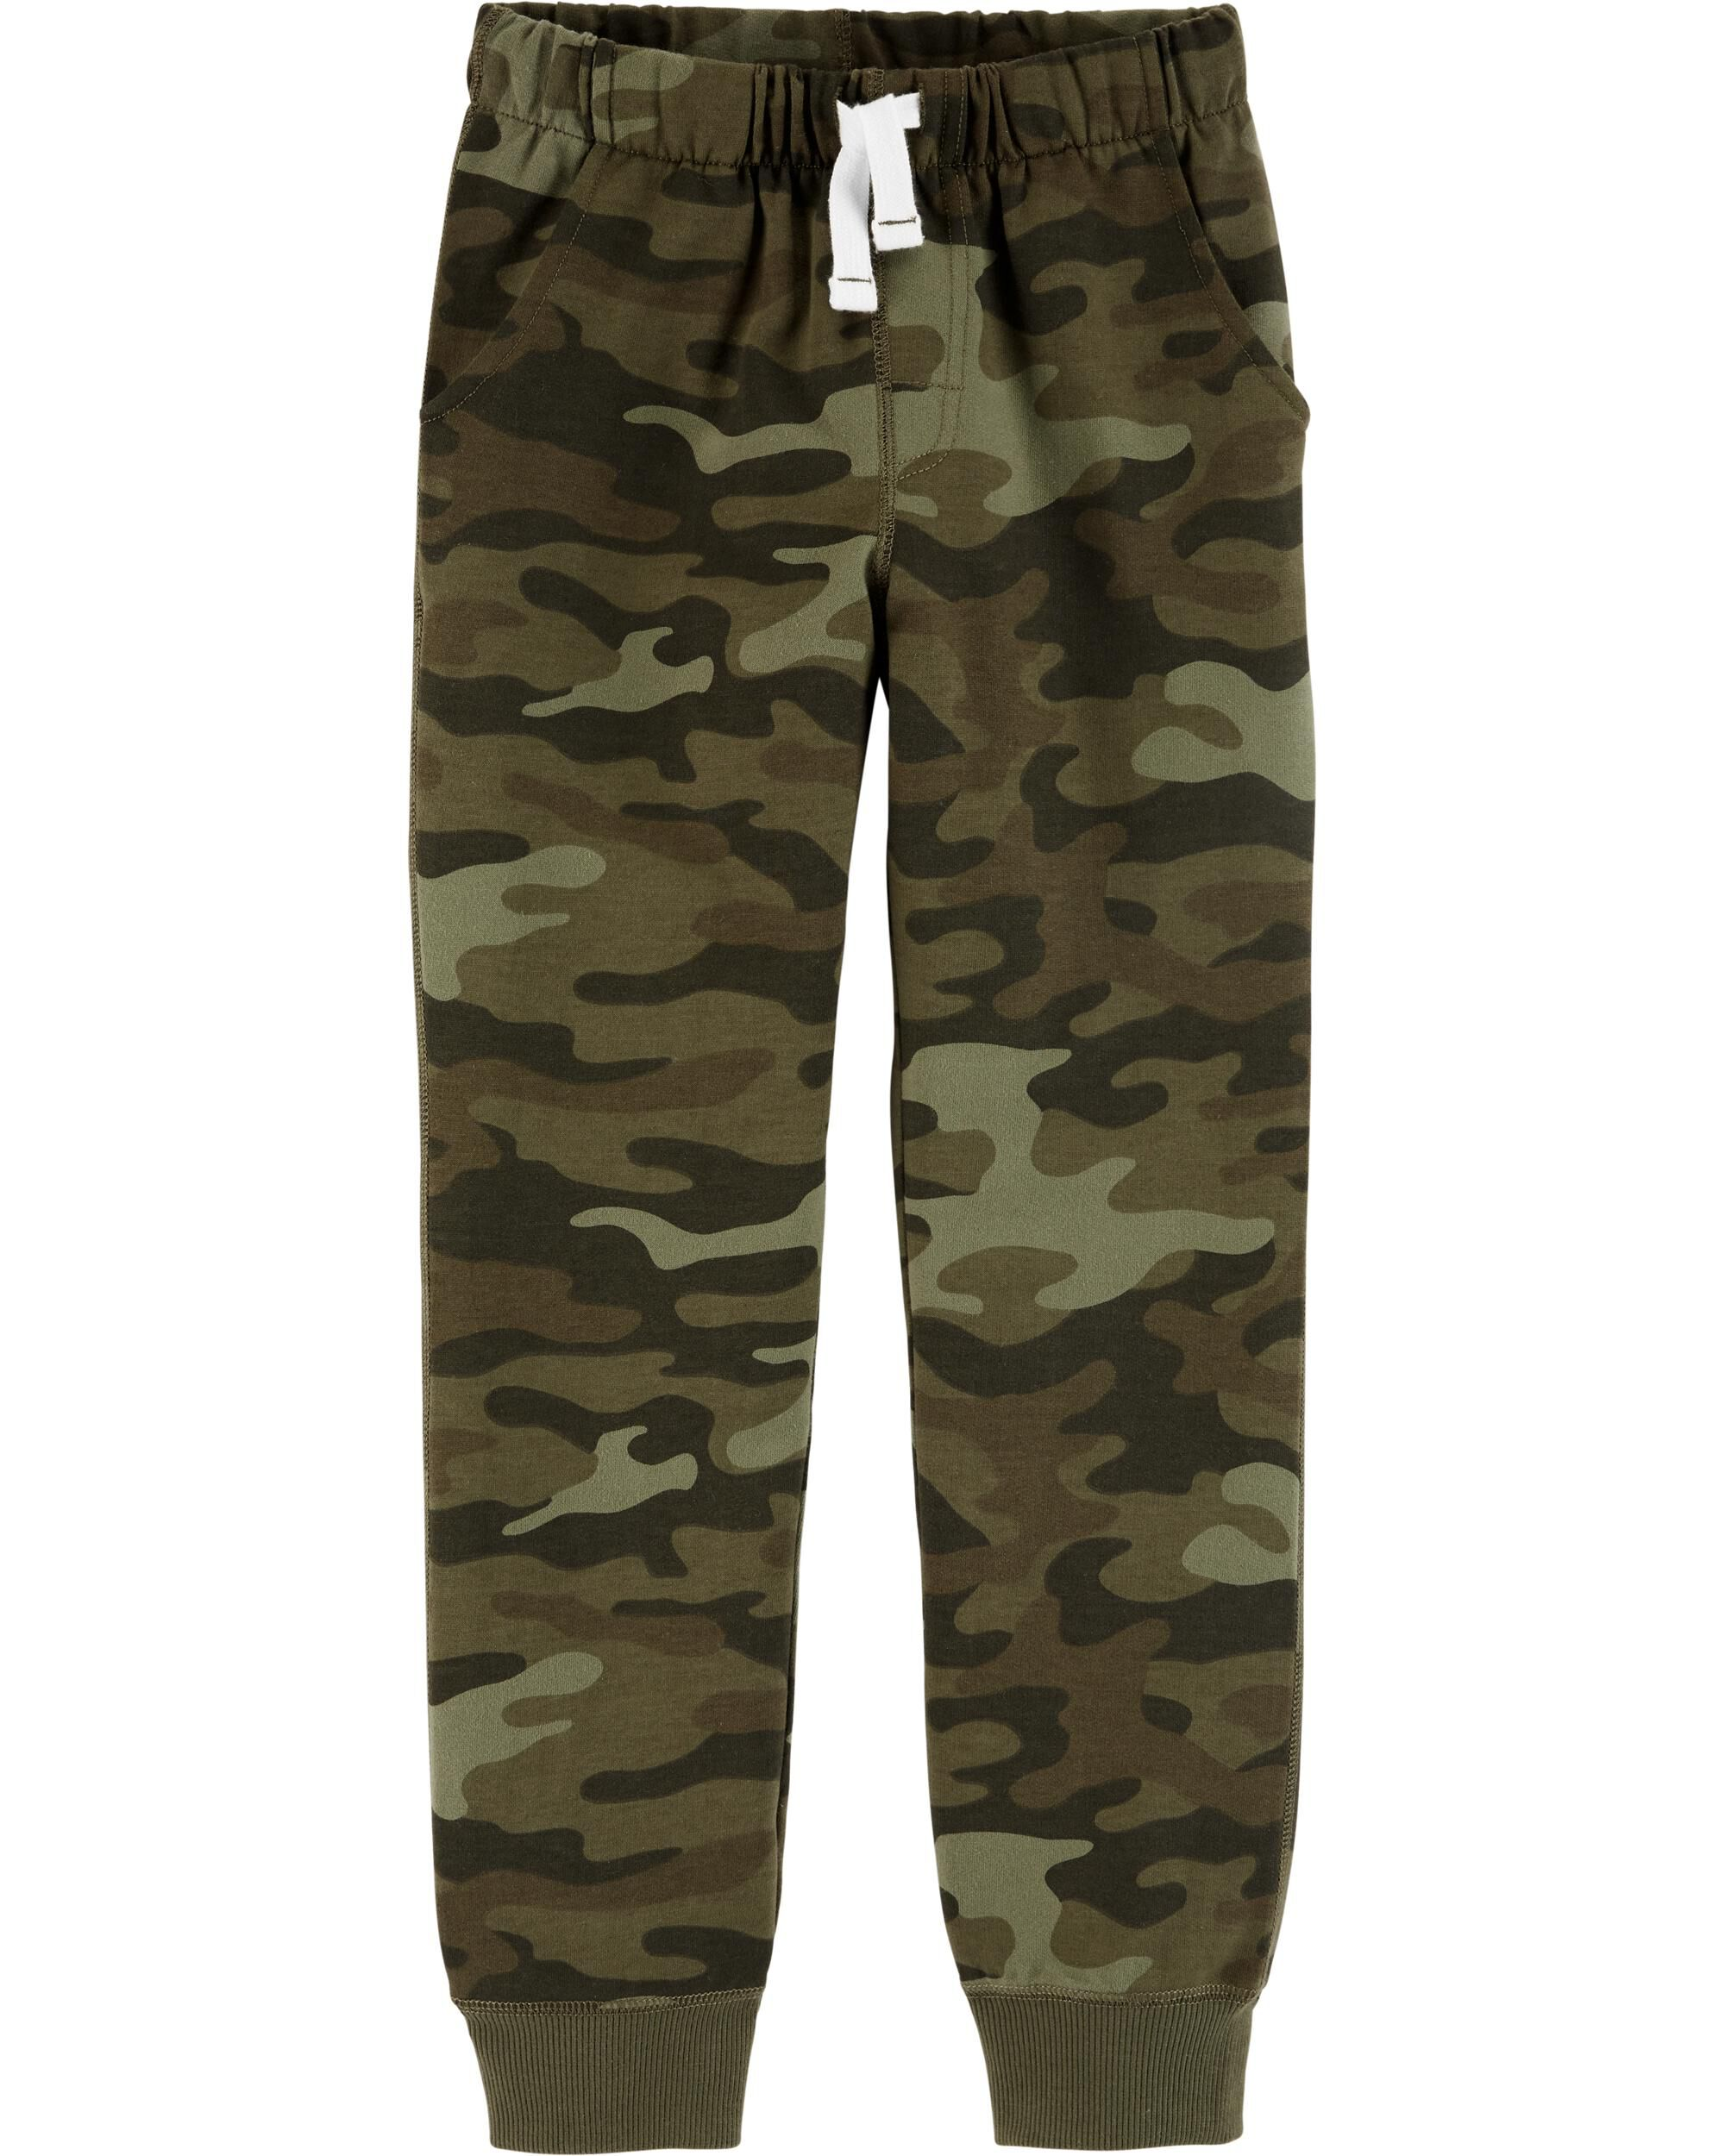 *DOORBUSTER*Camo Pull-On French Terry Joggers